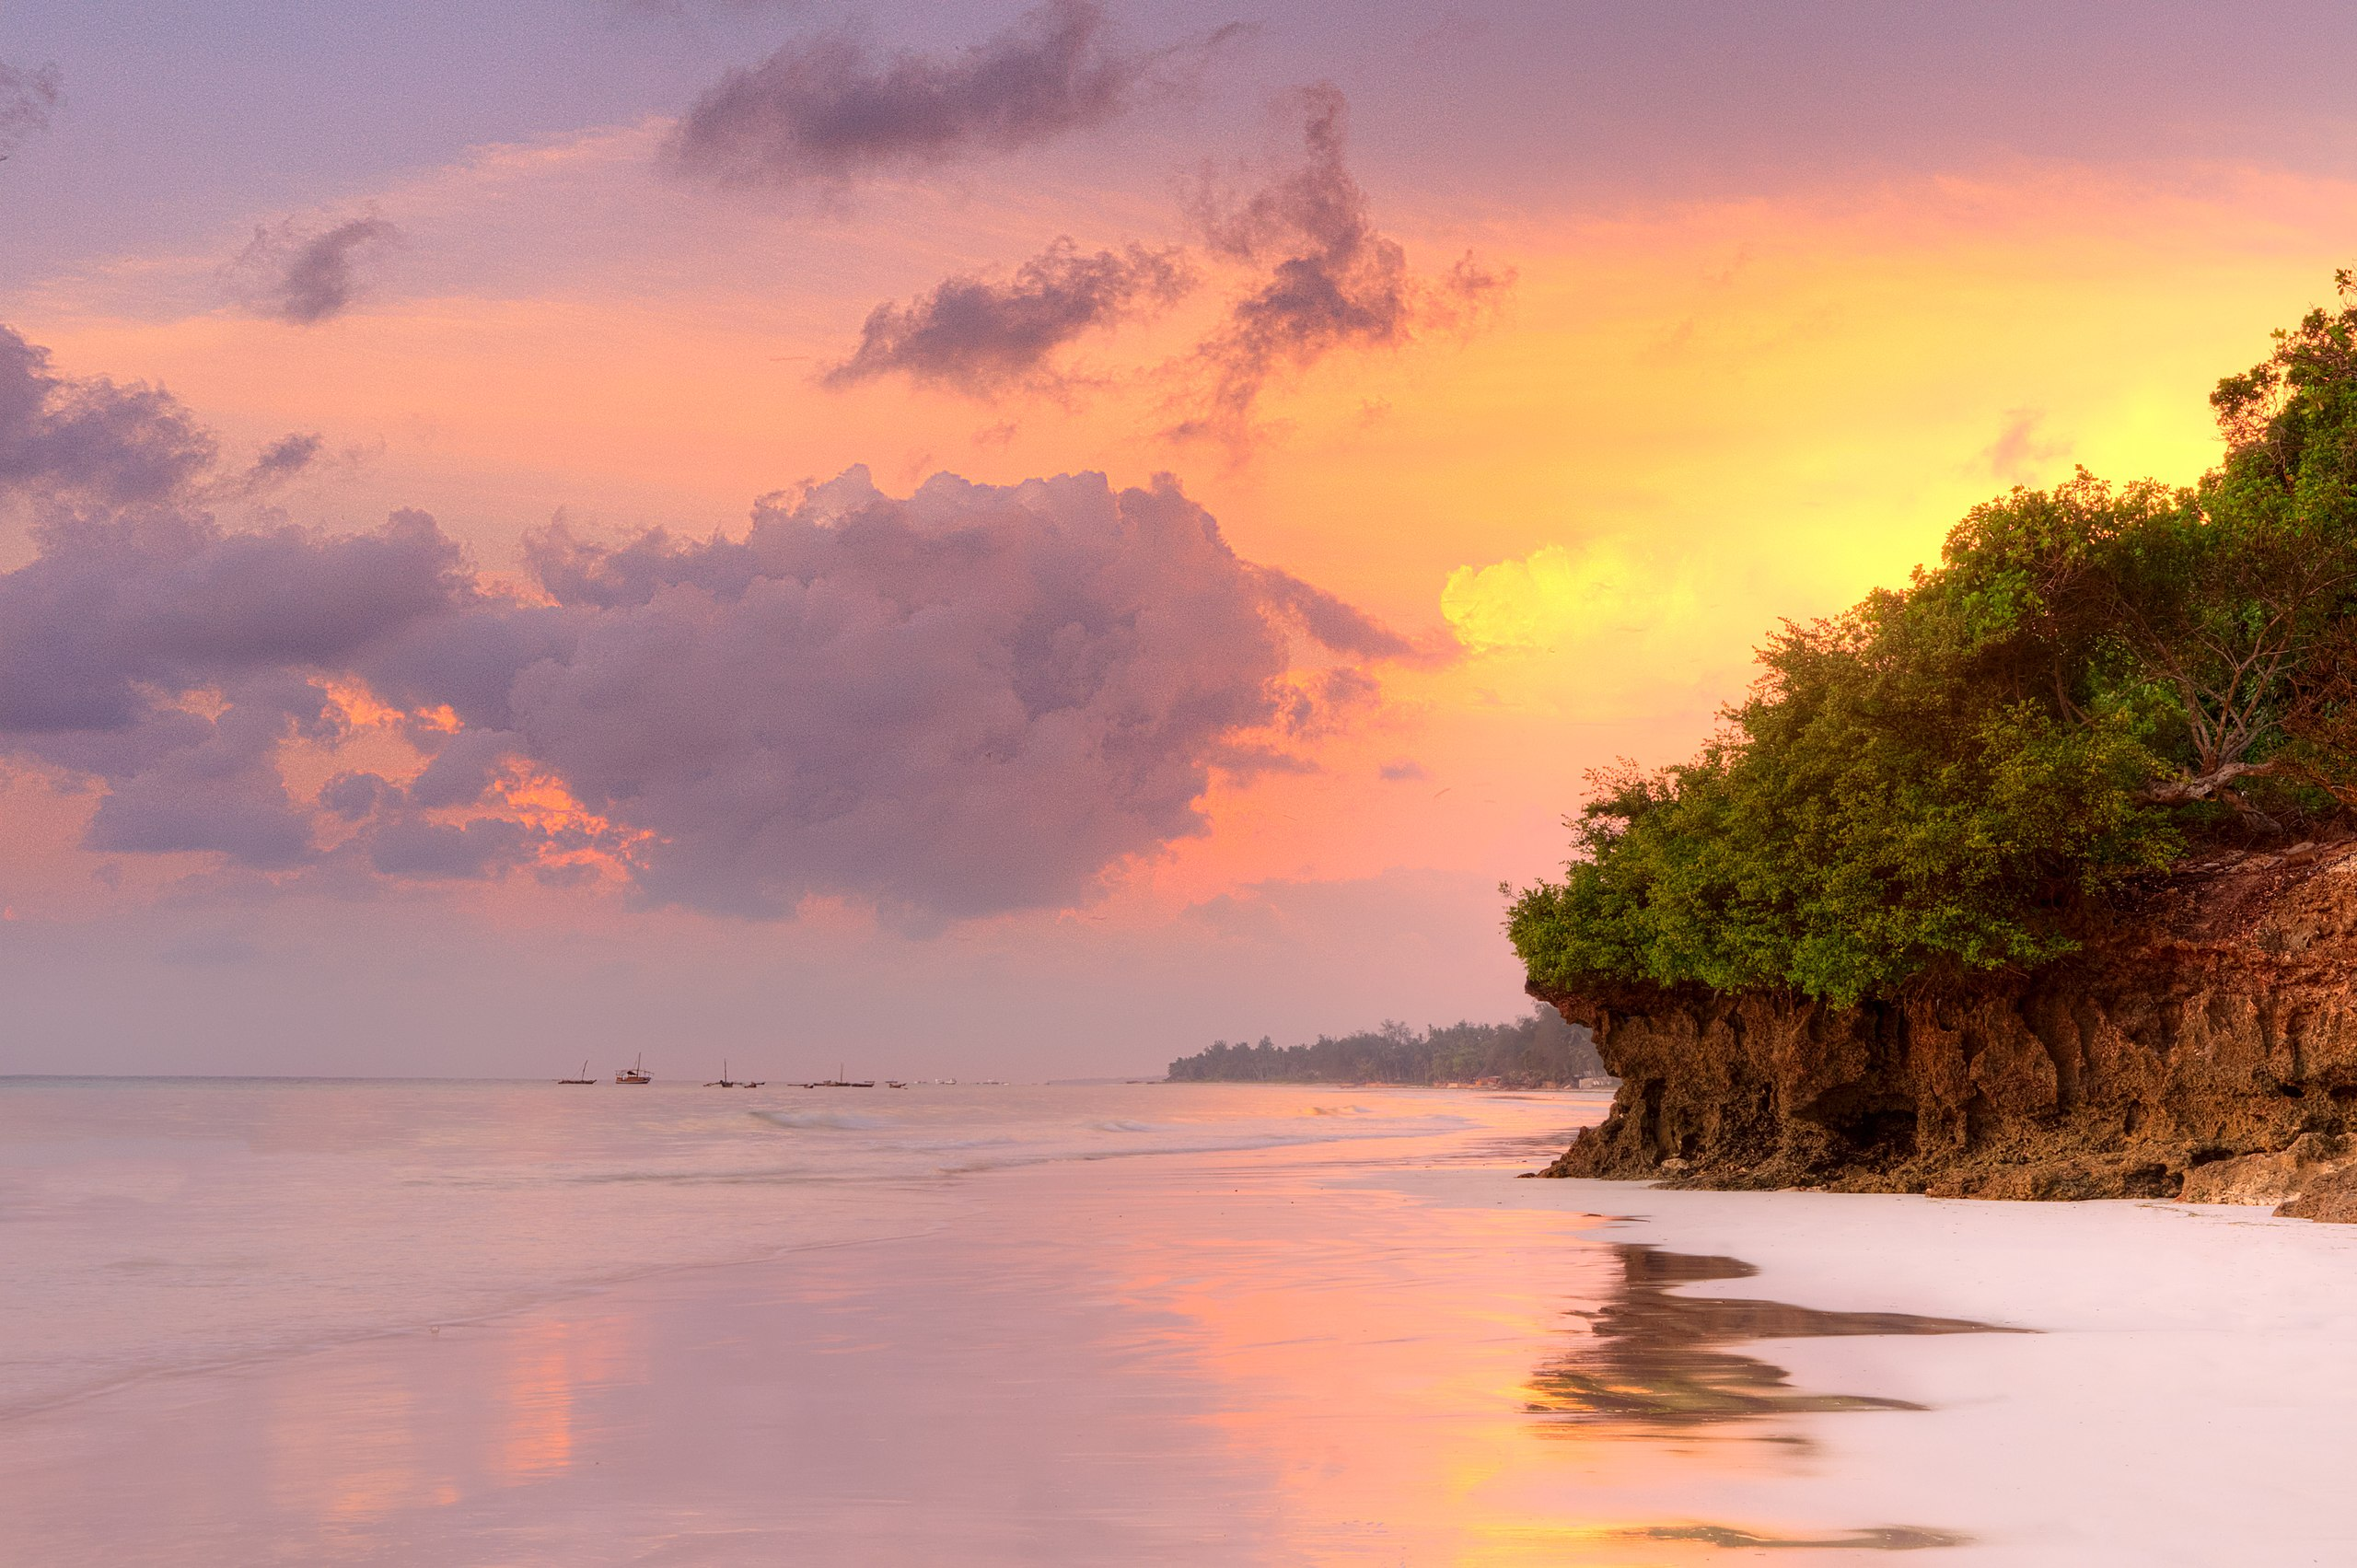 Sunrise at Diani Beach